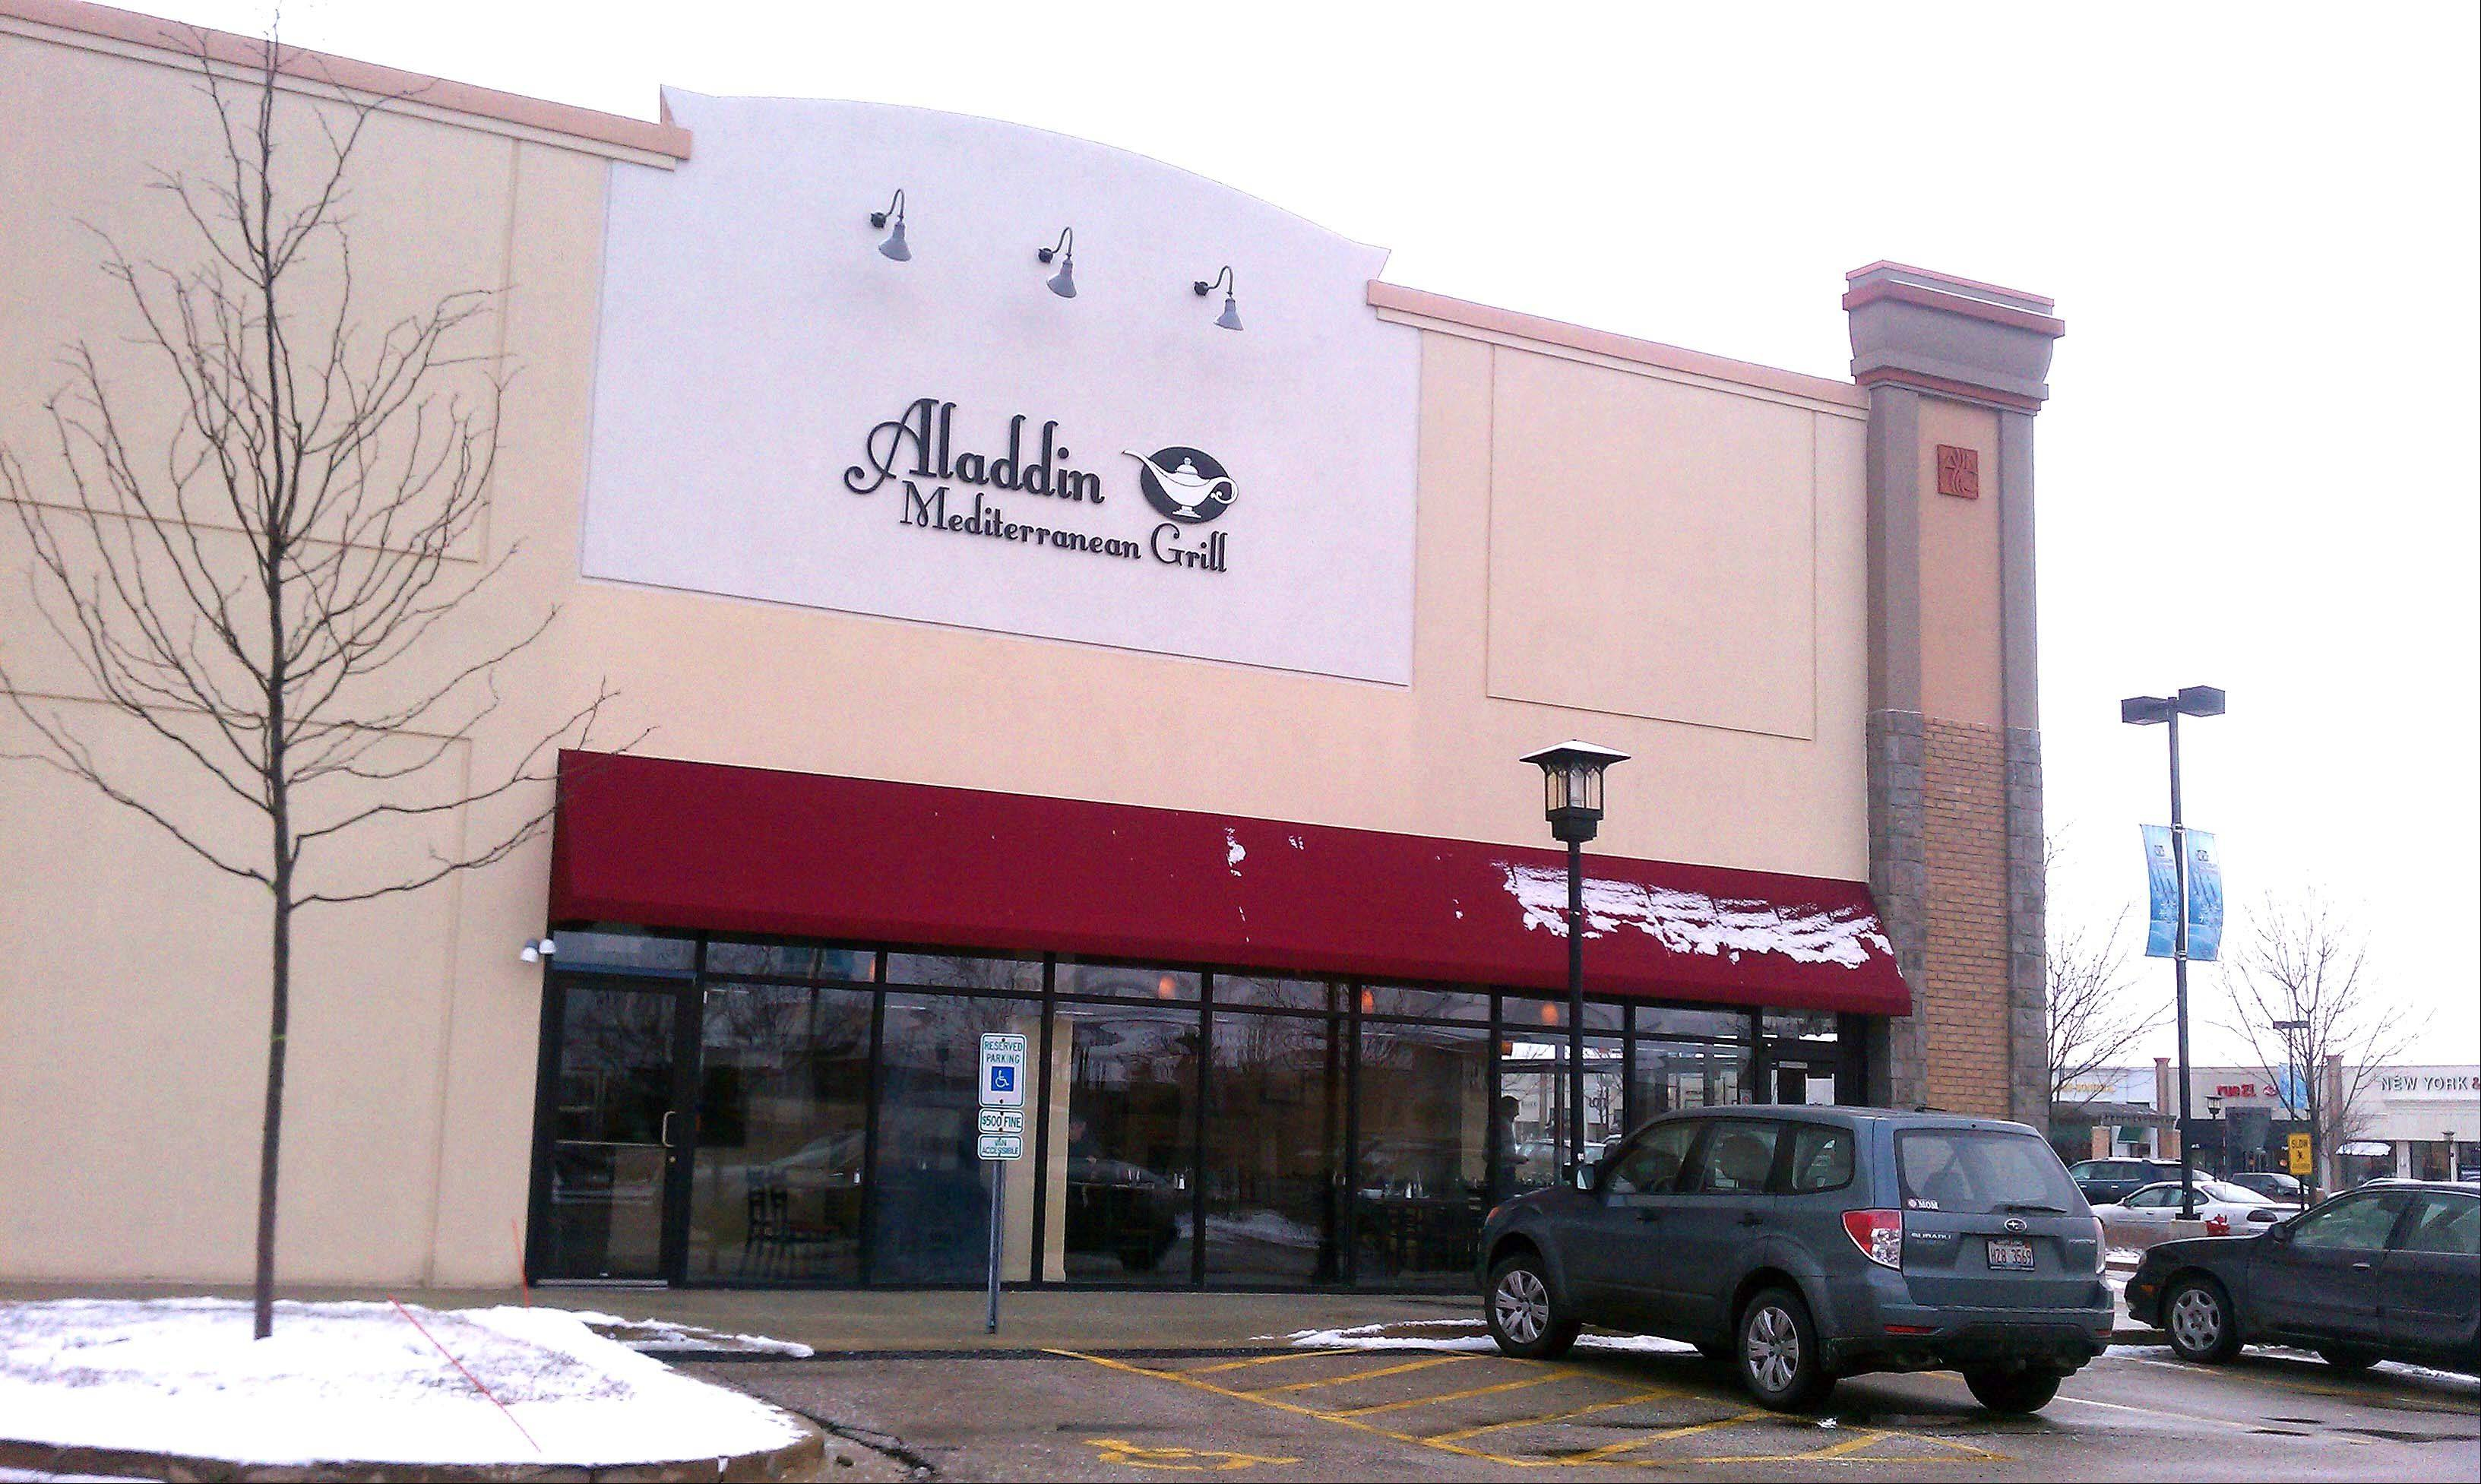 Aladdin Mediterranean Grill has opened at Algonquin Commons.